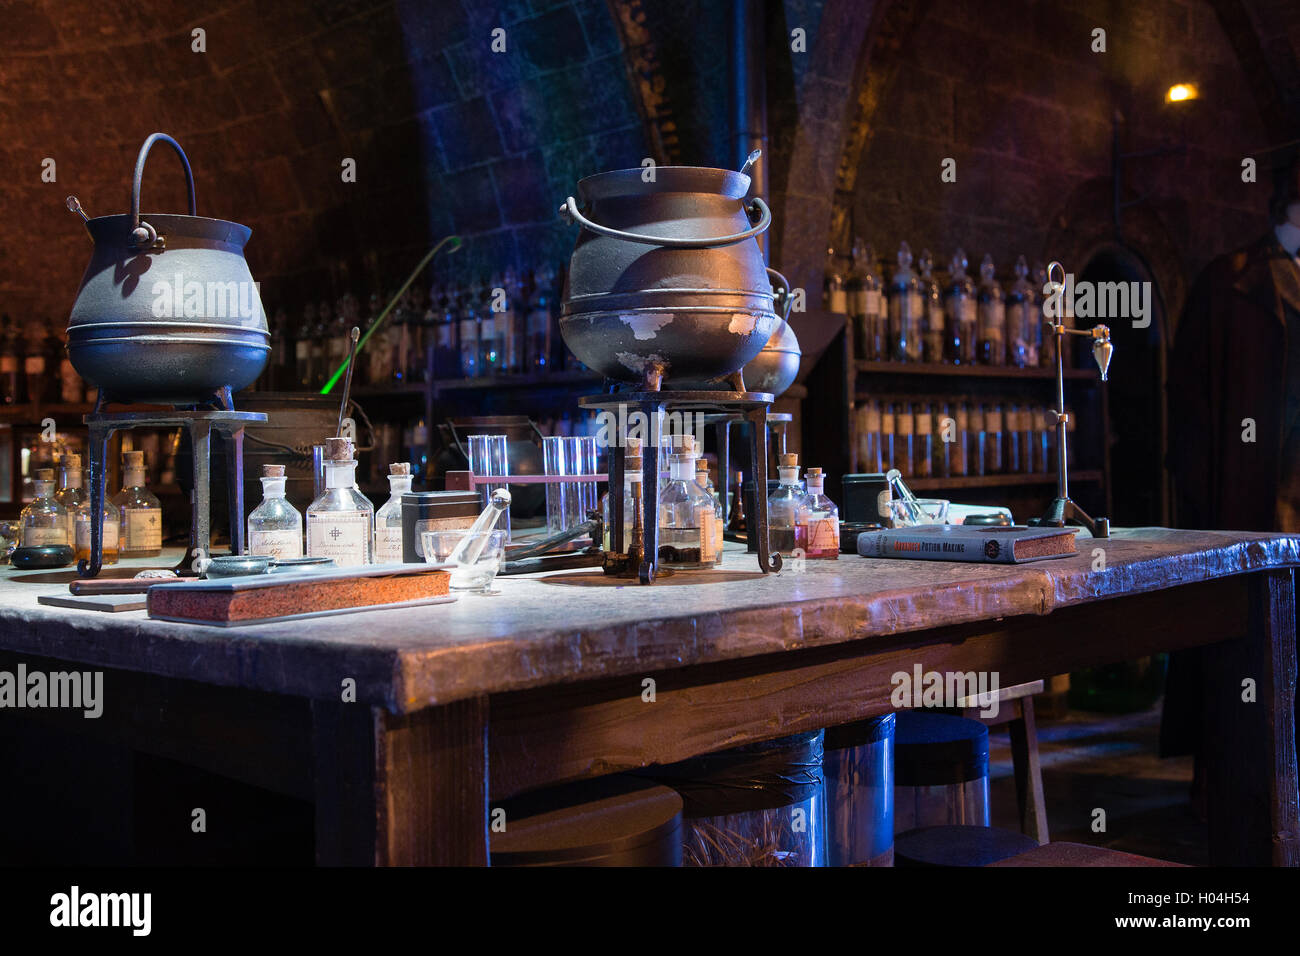 Potion classroom, Warner Brothers Studio Tour, The Making of Harry Potter, London - Stock Image